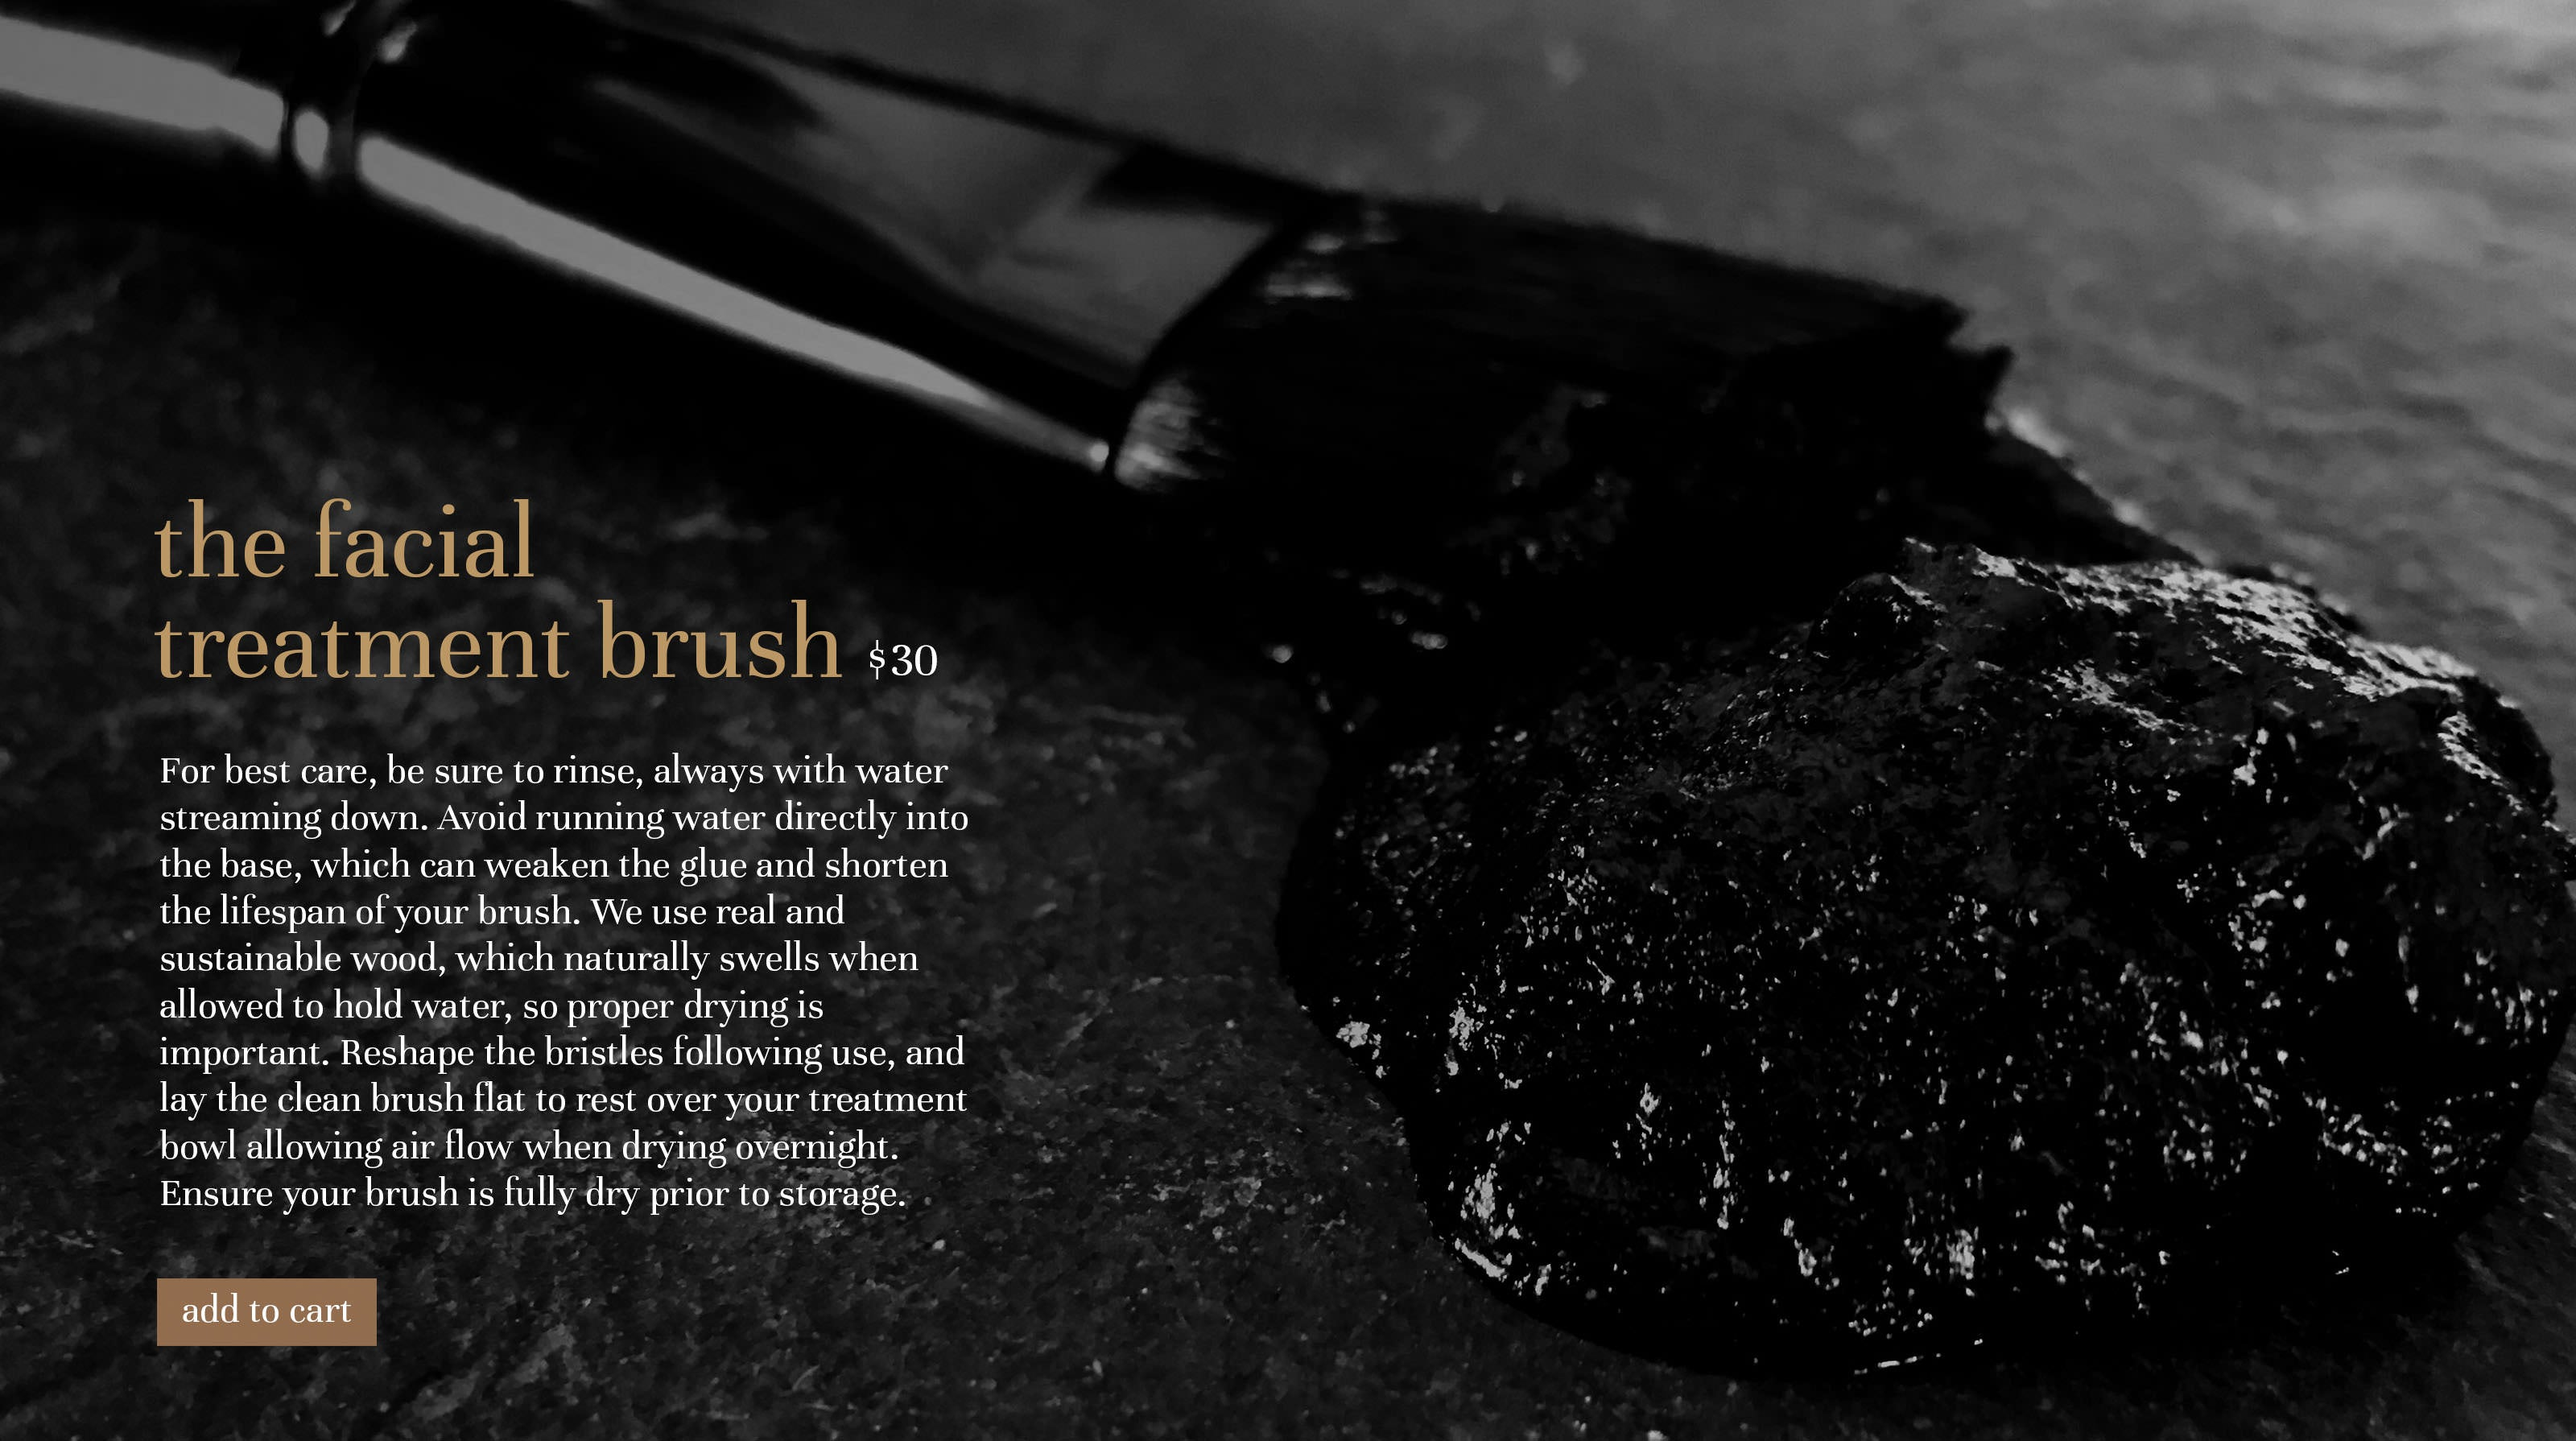 the facial treatment brush $30 For best care, be sure to rinse, always with water streaming down. Avoid running water directly into the base, which can weaken the glue and shorten the lifespan of your brush. We use real and sustainable wood, which naturally swells when allowed to hold water, so proper drying is important. Reshape the bristles following use, and lay the clean brush flat to rest over your treatment bowl allowing air flow when drying overnight. Ensure your brush is fully dry prior to storage.